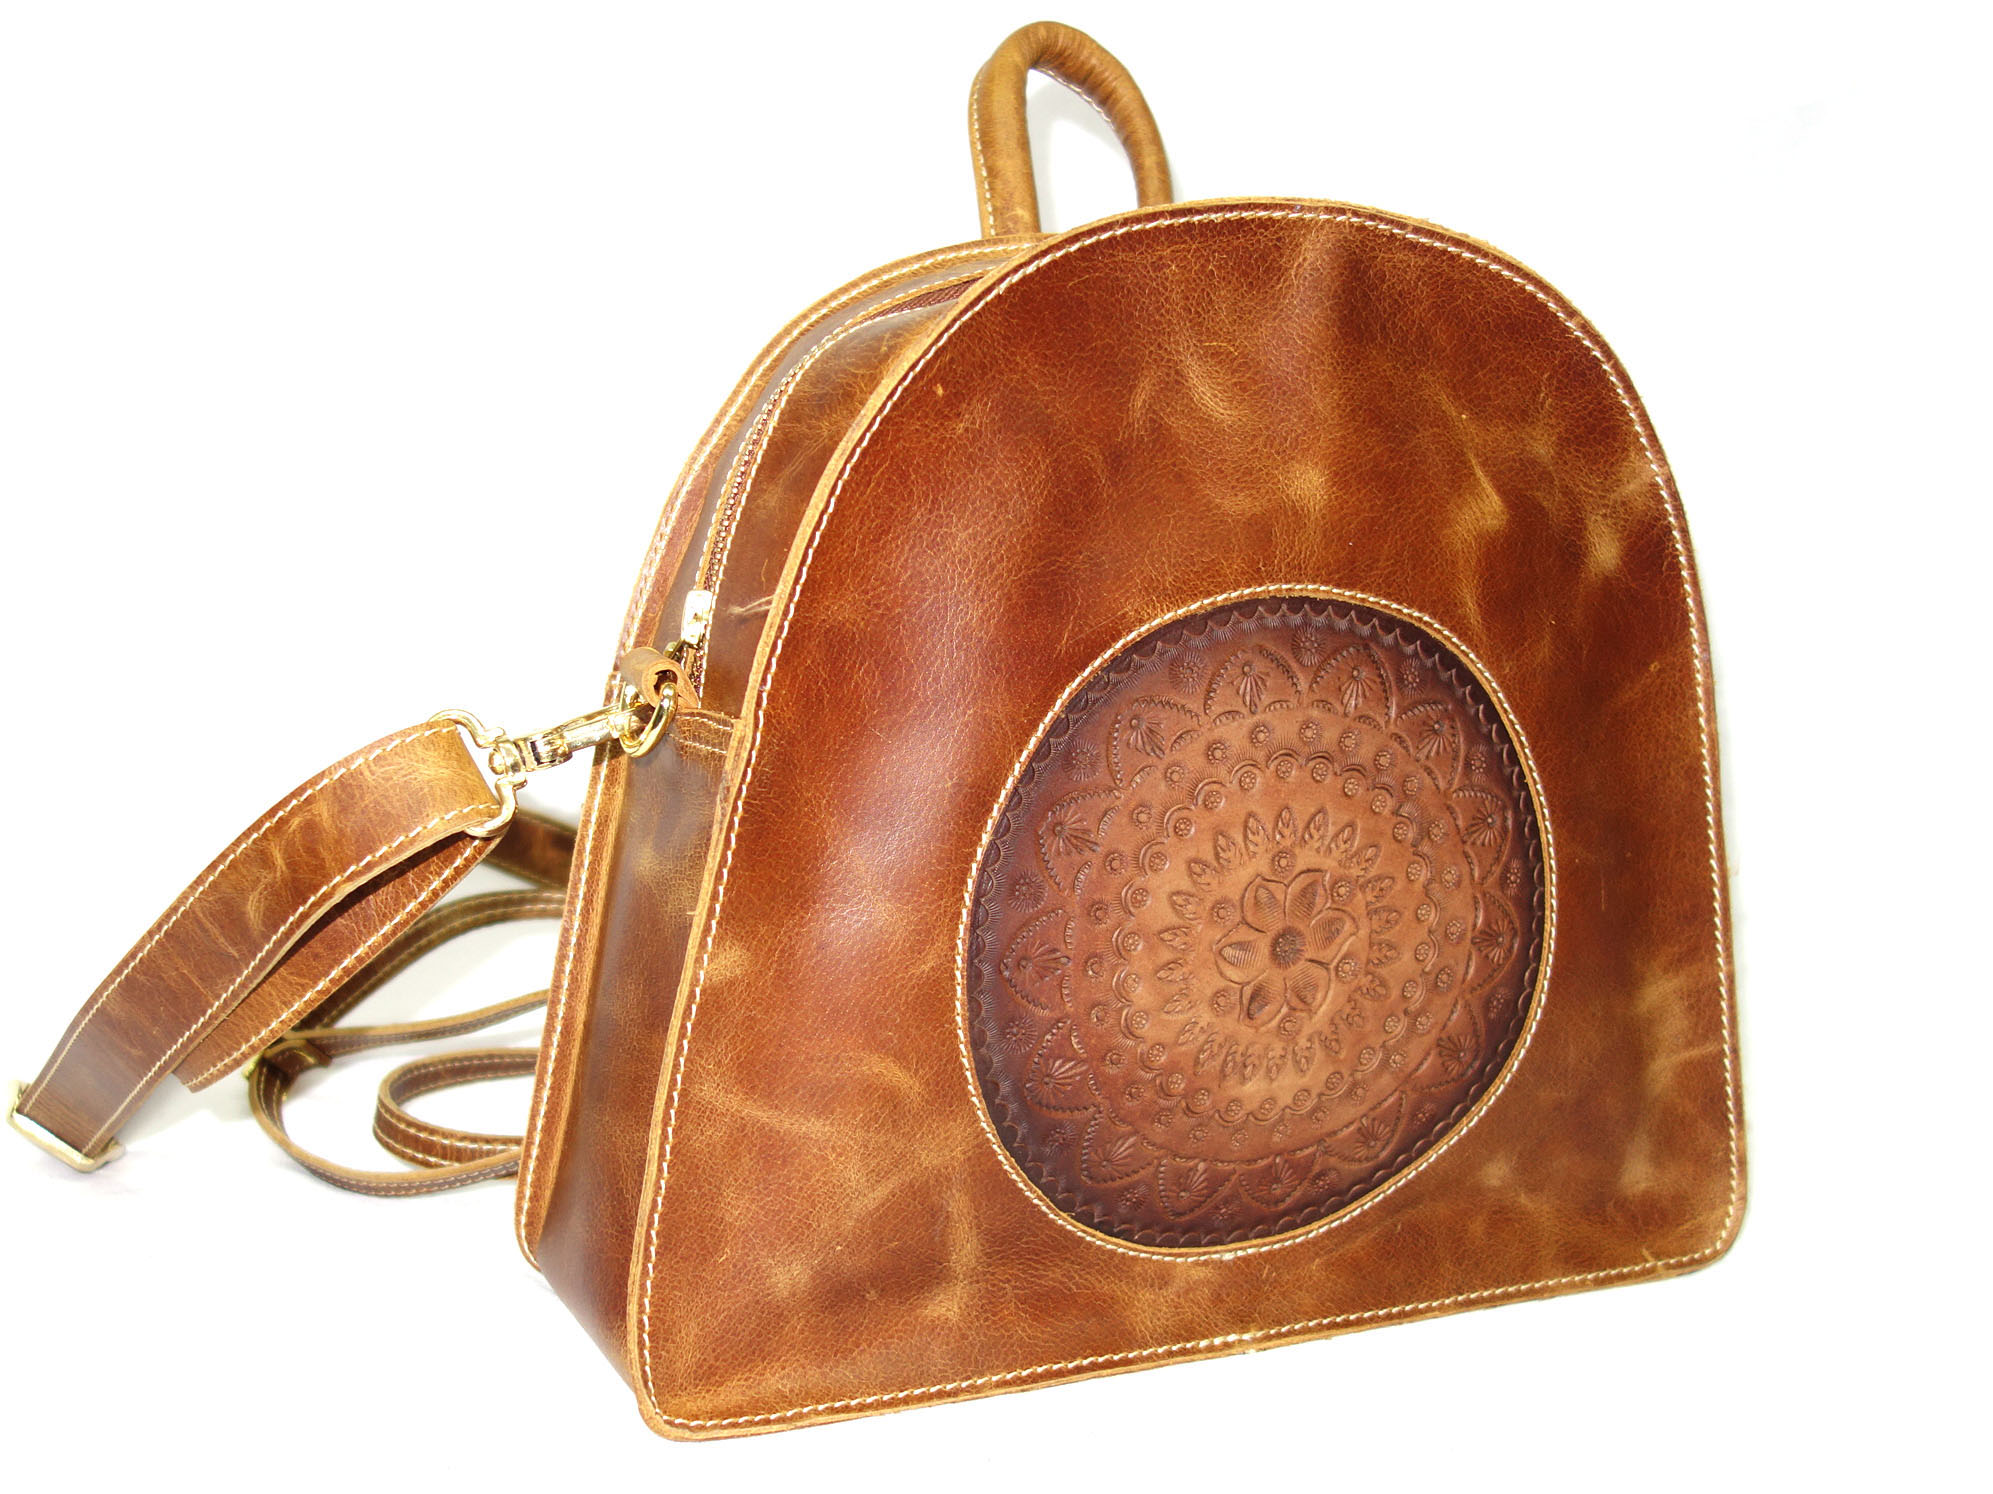 Leather Bag, Back Pack Hand Crafted and Color with Shoulder Strap for Girls & Woman Vintage Finish (Brown)